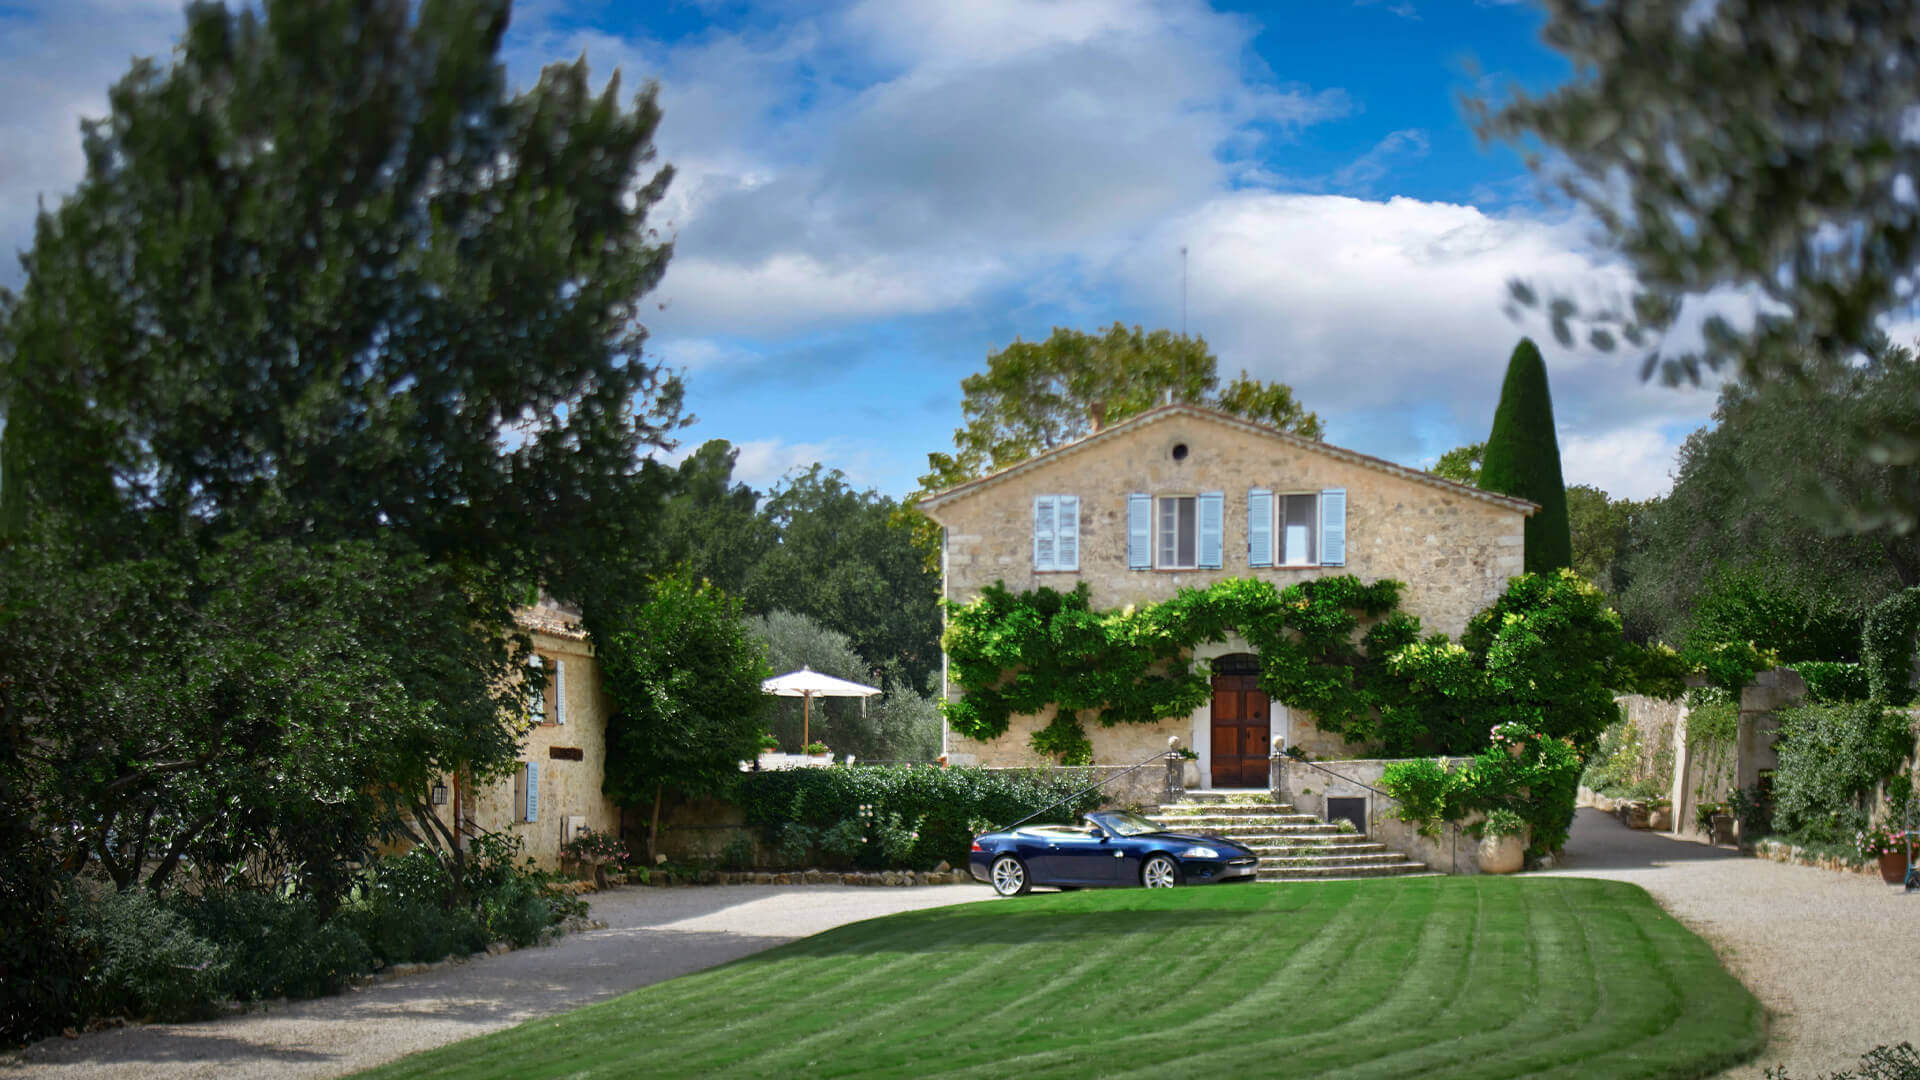 Large Domain Valbonne driveway to villa with car and lawn